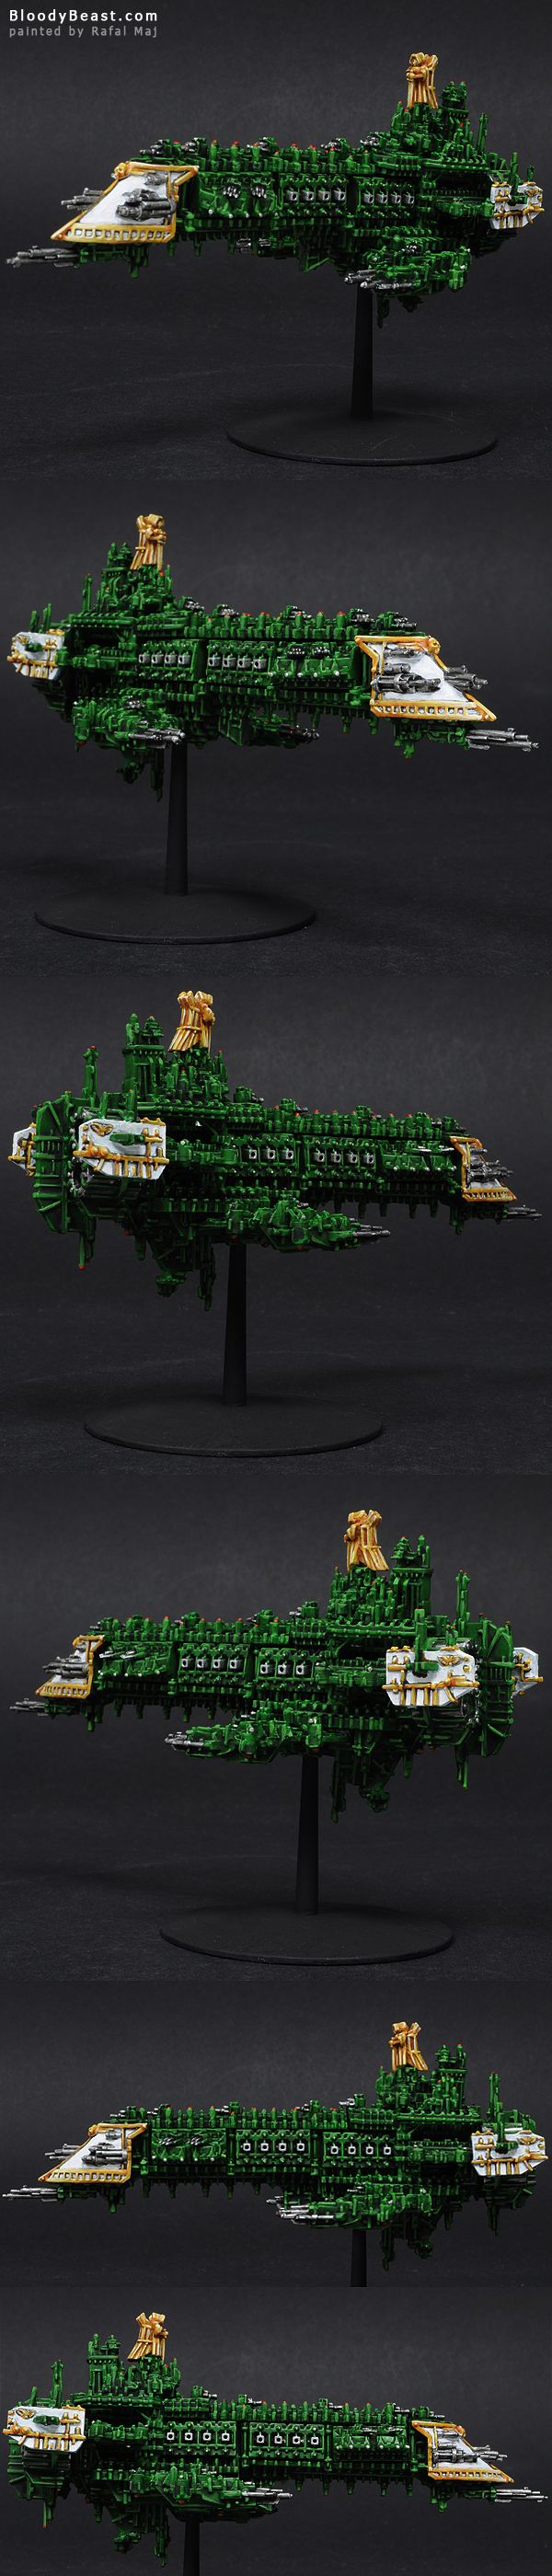 Battlefleet Gothic Imperial Emperor Class Battleship painted by Rafal Maj (BloodyBeast.com)